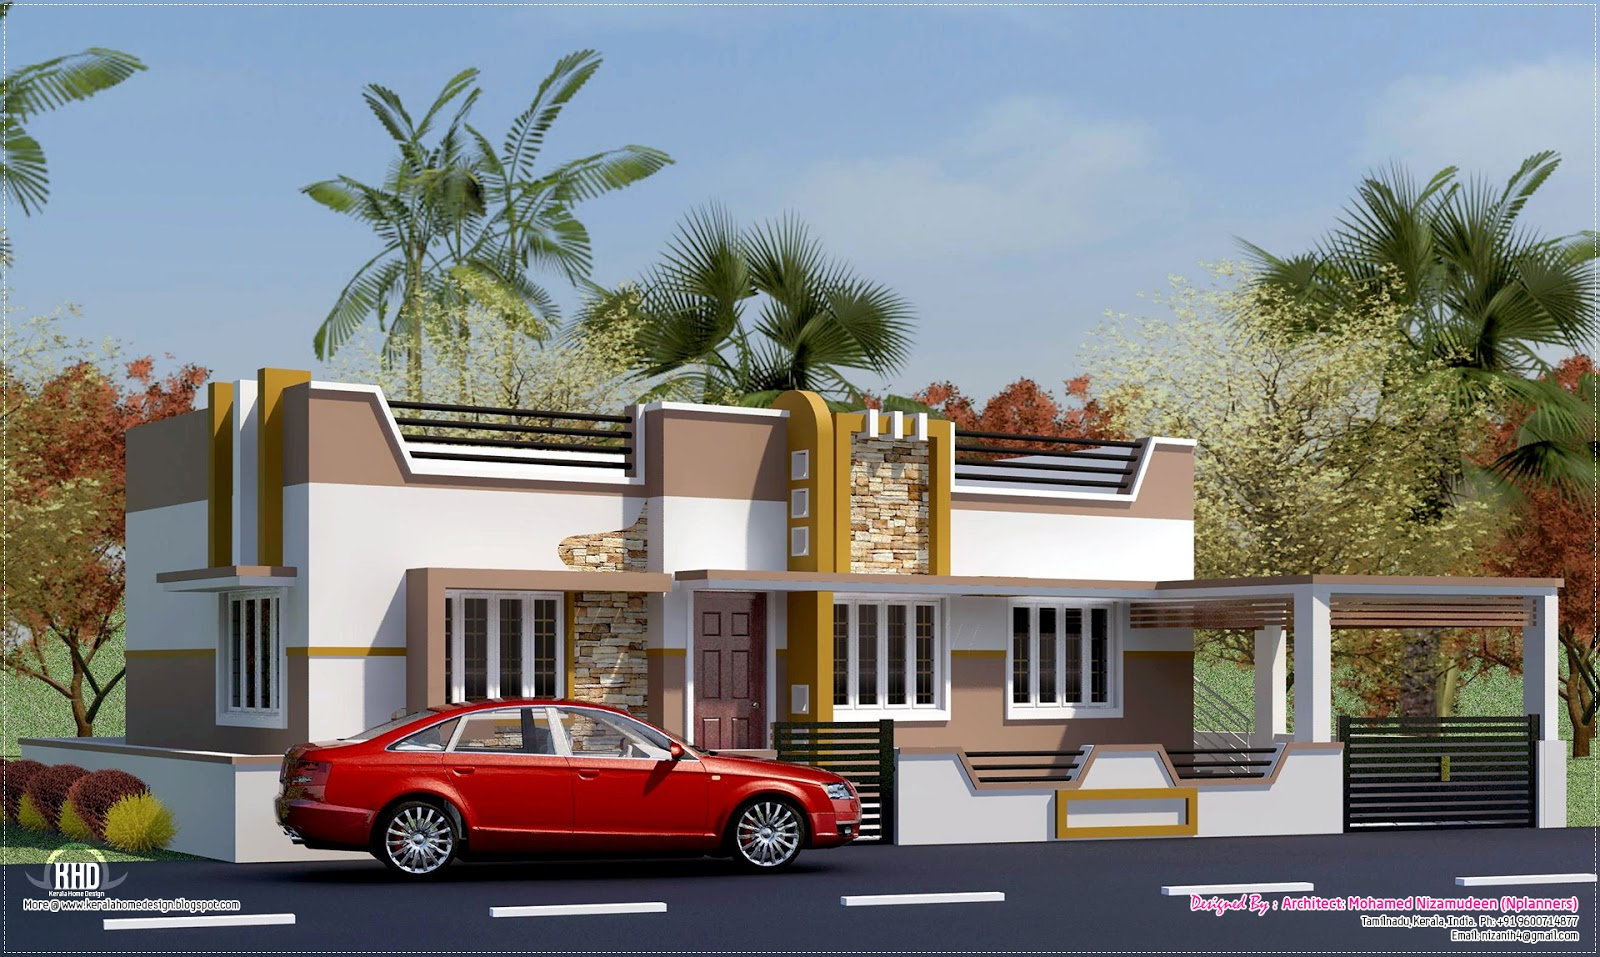 Minimalist Home Design Kerala Home Design And Floor Plans 1484 Sq Feet South India House On